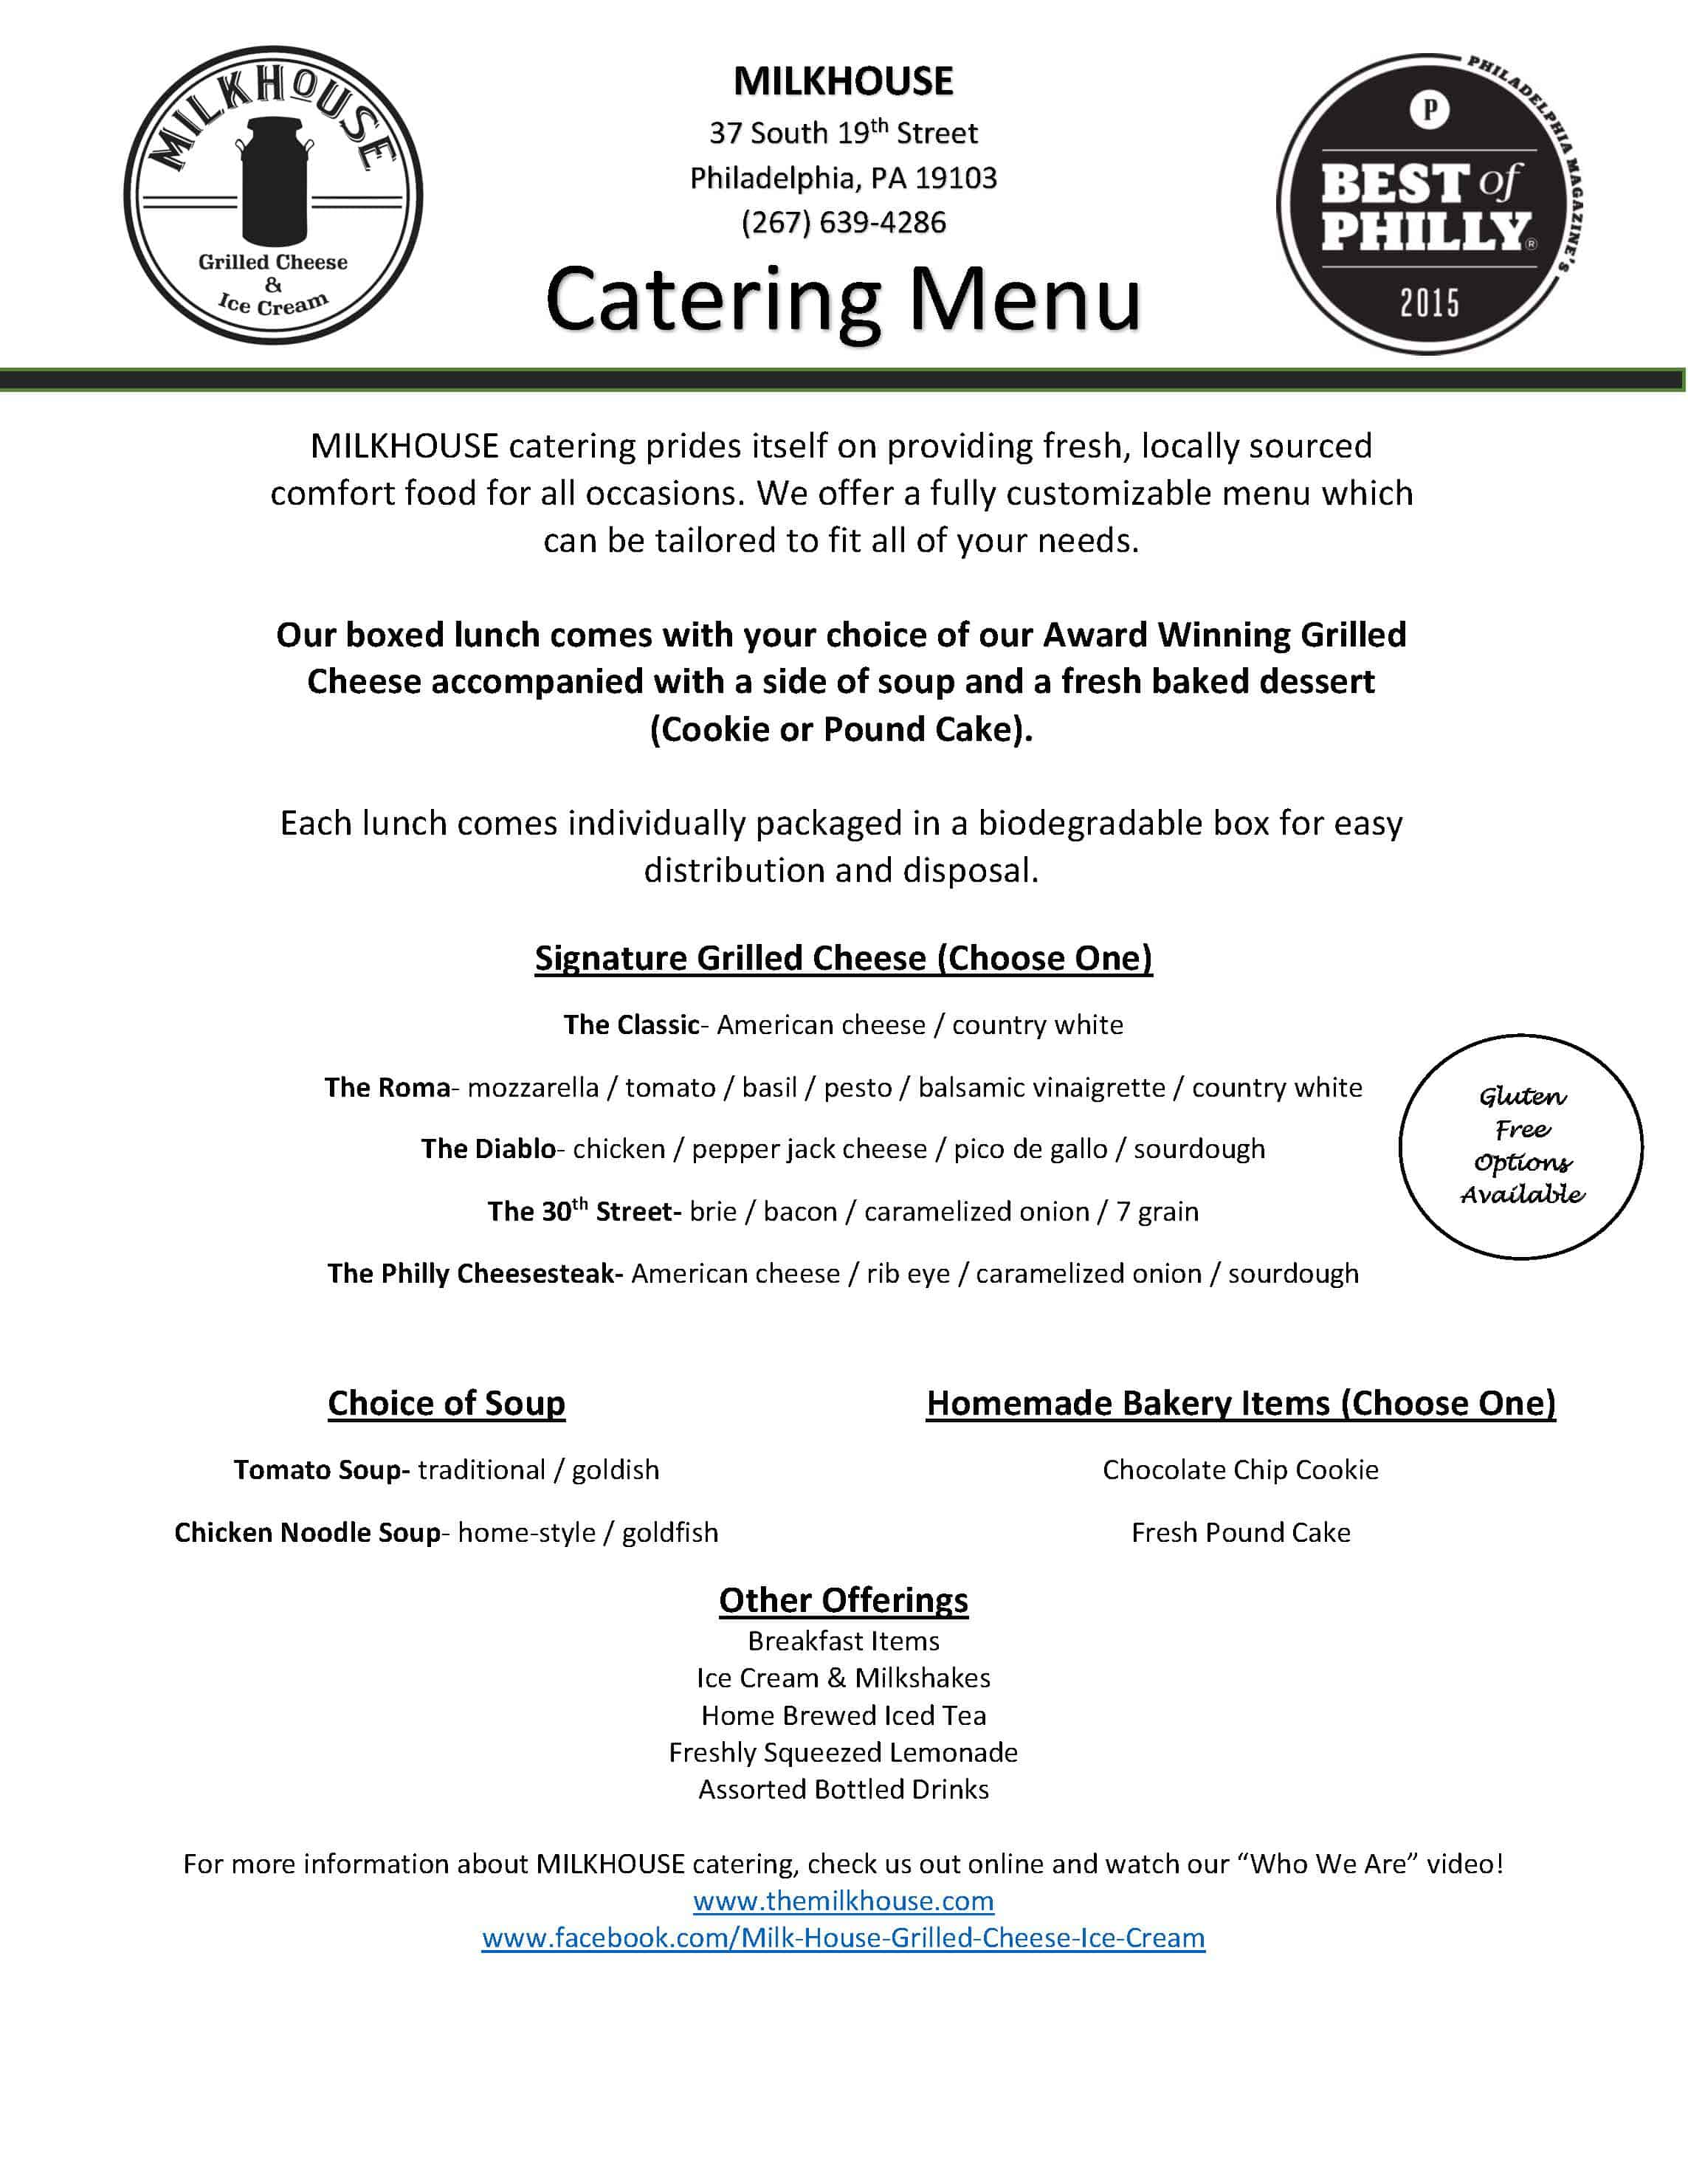 MilkHouse Catering Menu